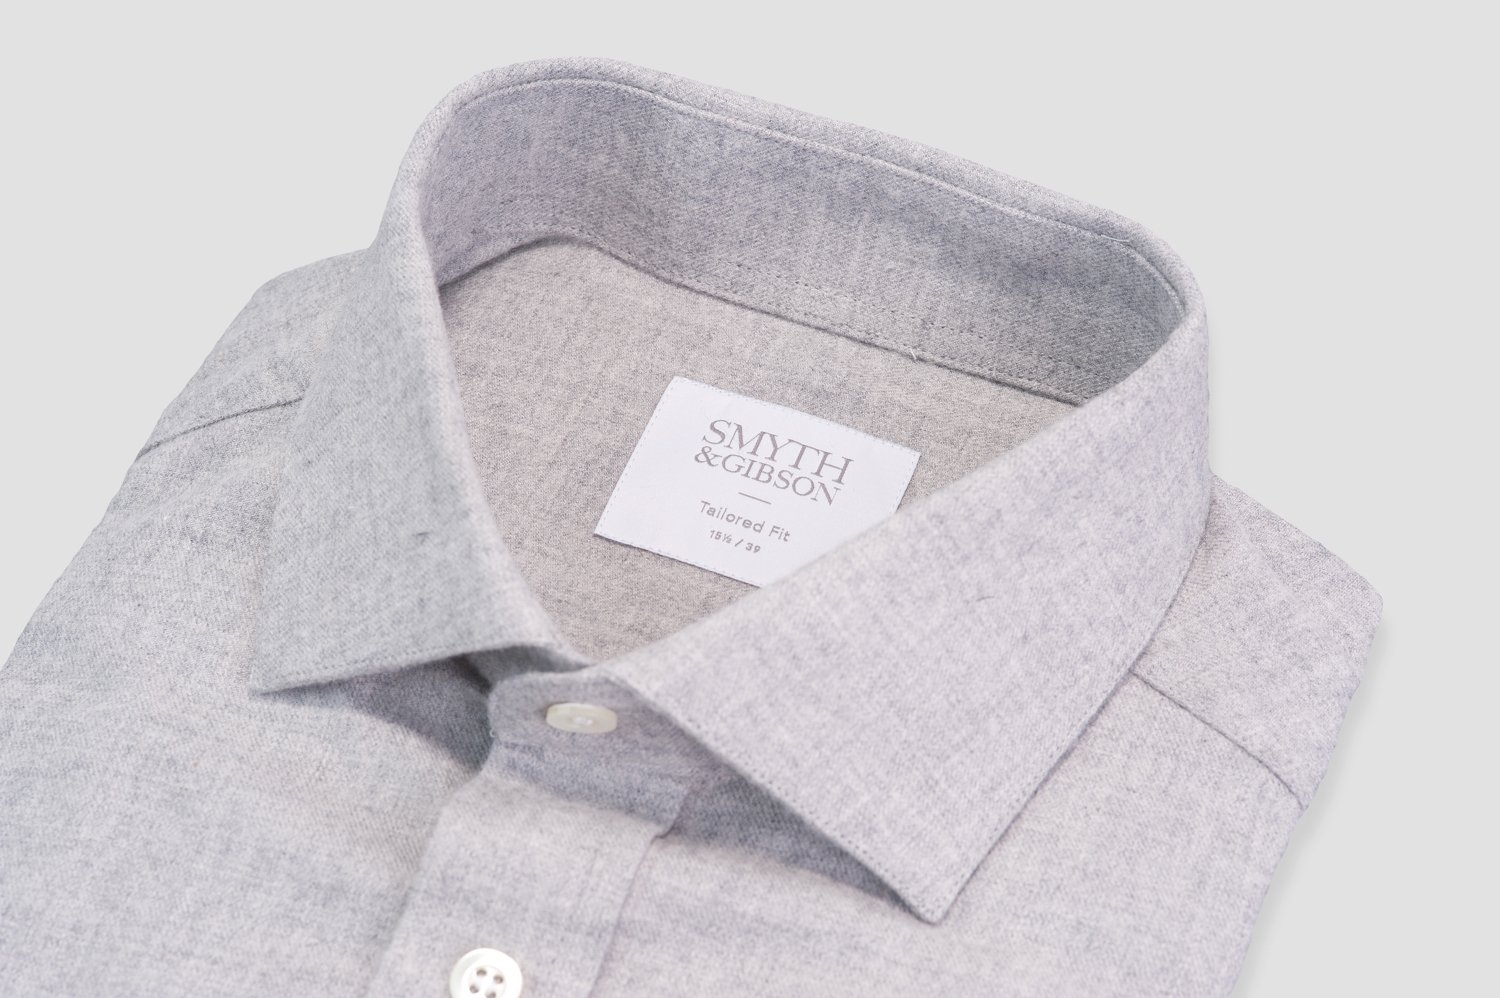 Smyth & Gibson Brushed Cotton Tailored Fit Shirt In Light Grey